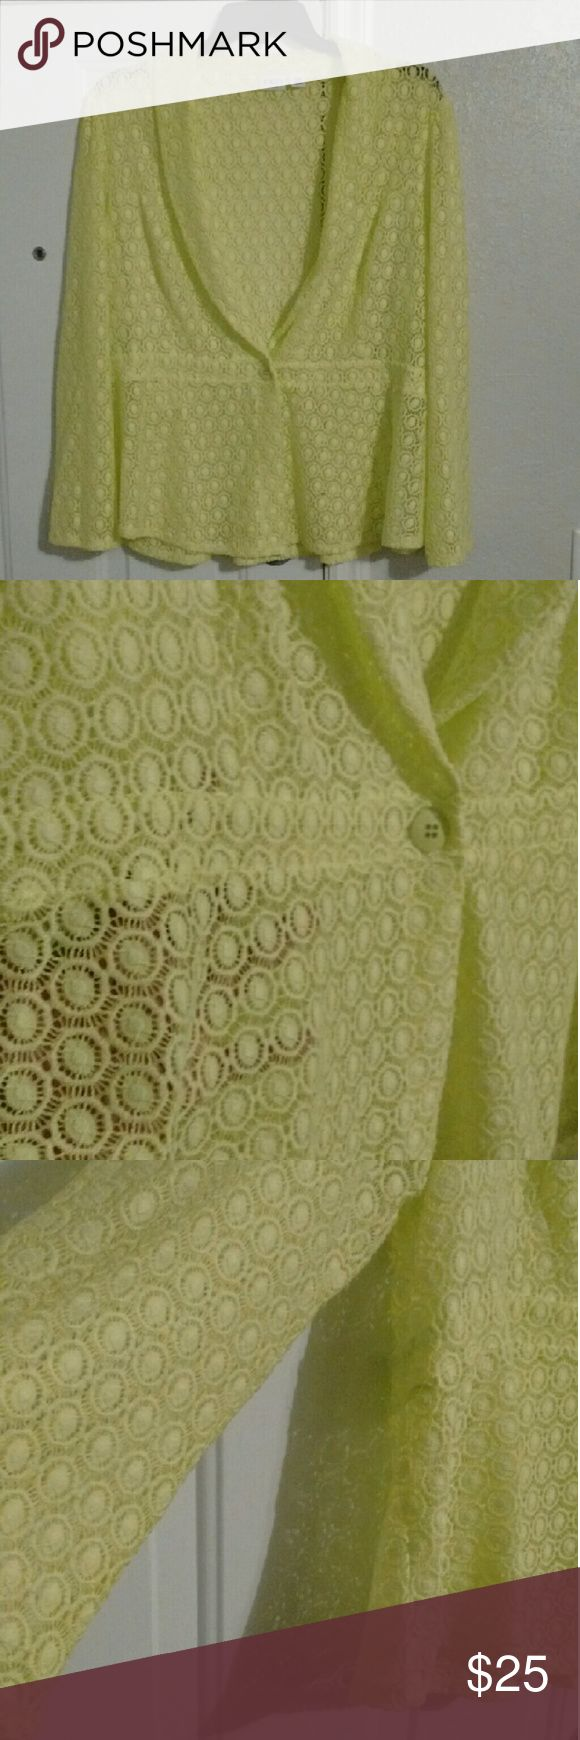 Lime Green Top This super cute long sleeve peplum style one button lime green top can be wore as a top or jacket. Darling see-thru pattern adds flare to any outfit. Worn once for a few hours. Cato size 22/24. Cato Tops